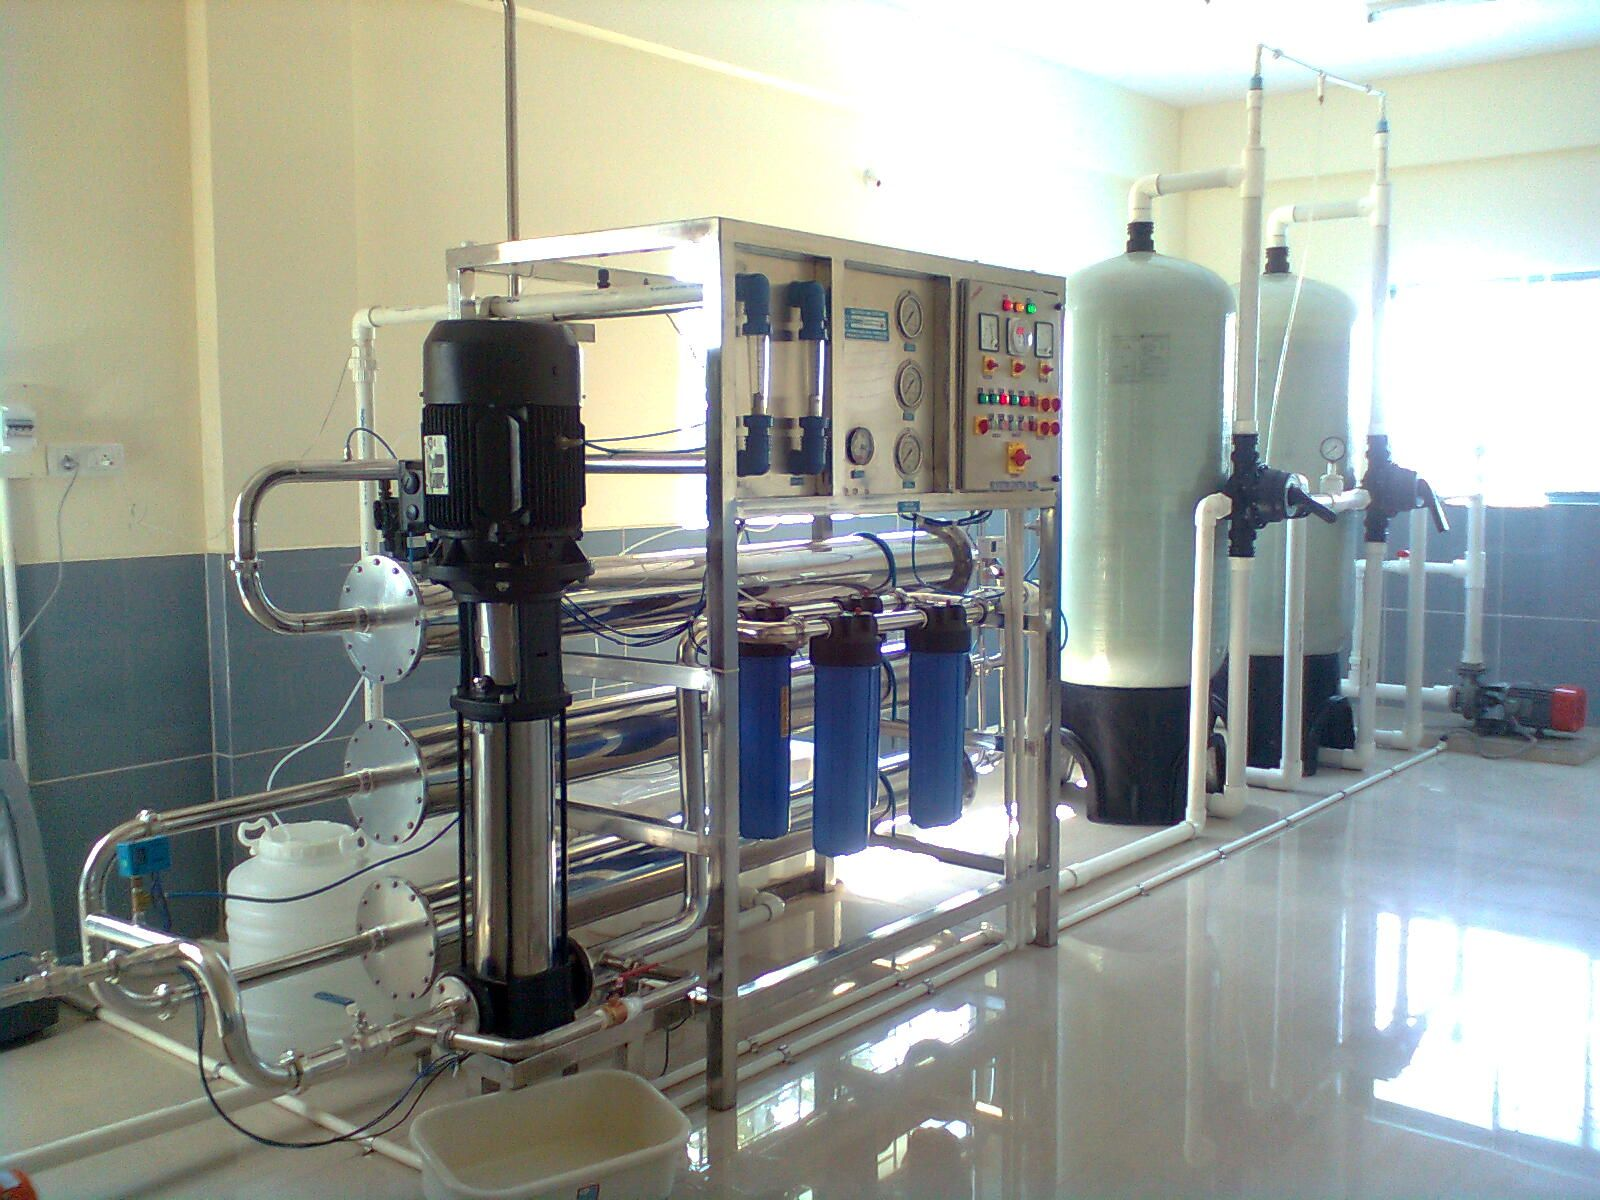 Reverse osmosis a membrane desalination process increasingly used